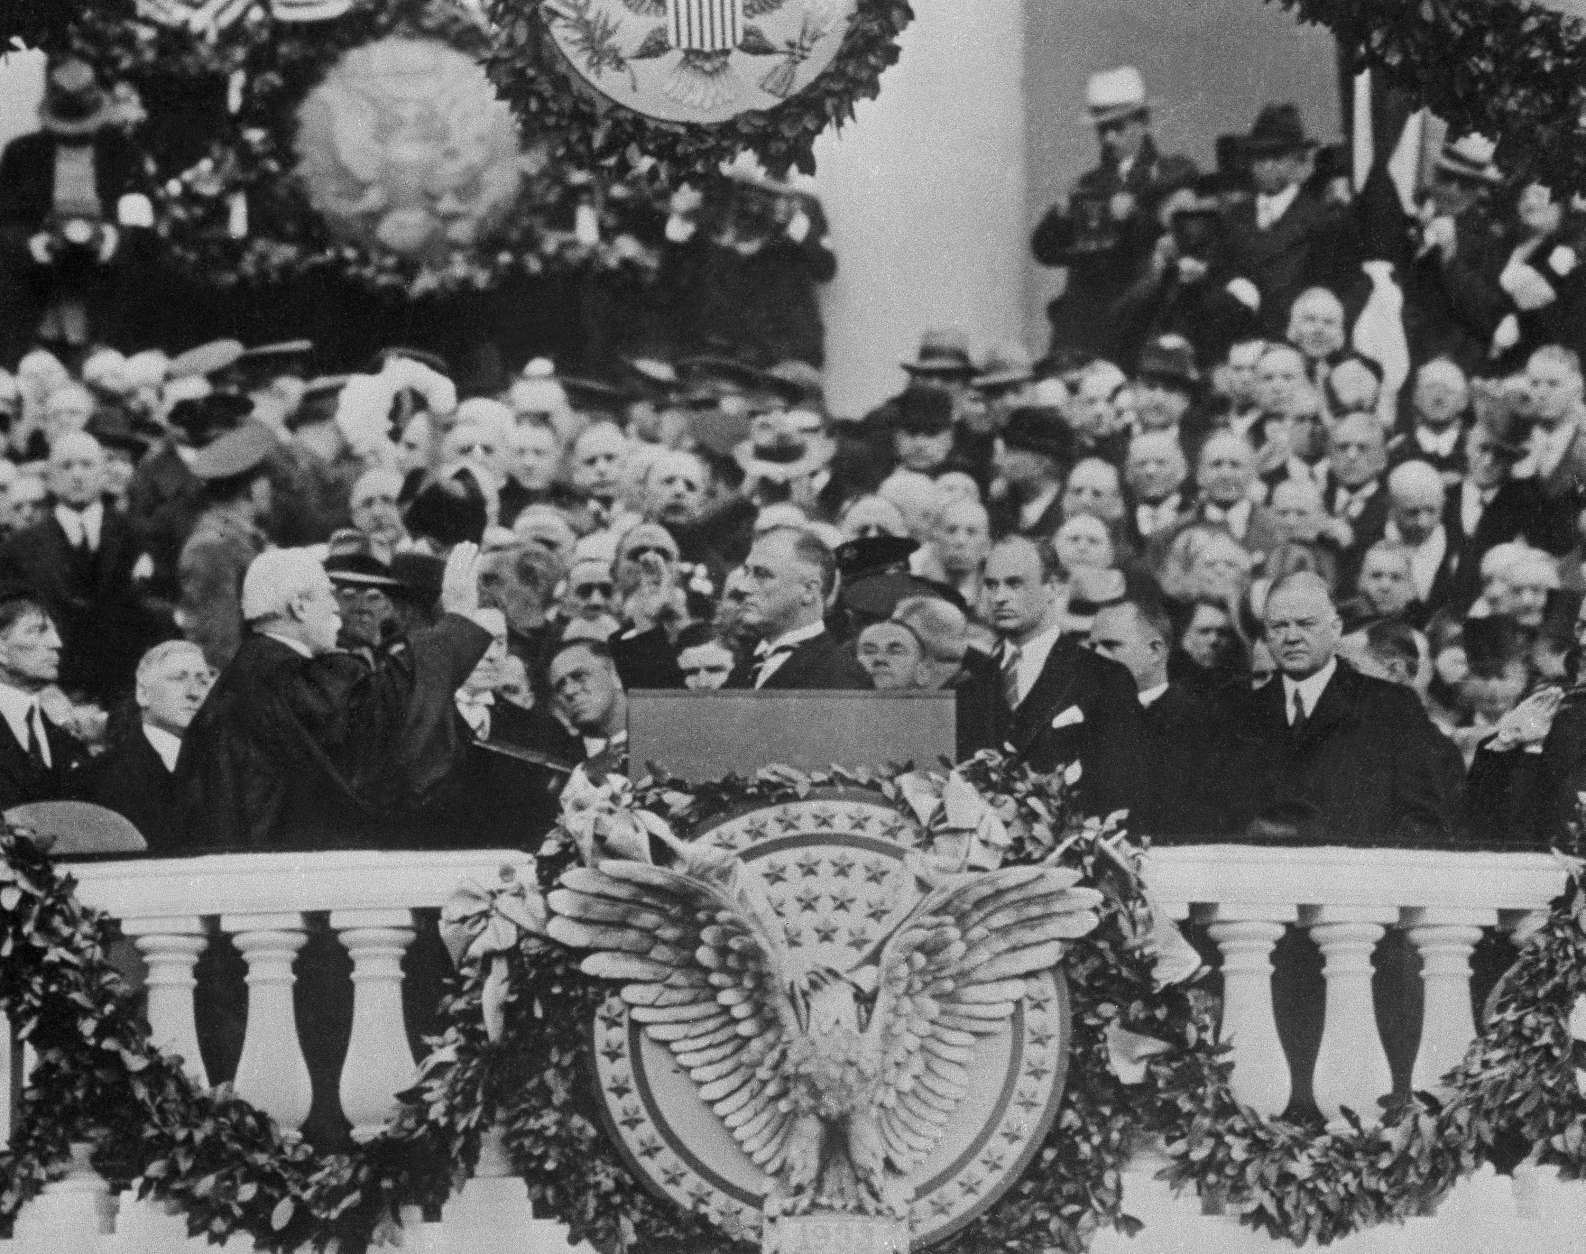 Pres. Franklin D. Roosevelt, center, shown being sworn in, March 4, 1933, Washington, D.C. The rest of the group is unidentified. (AP Photo)